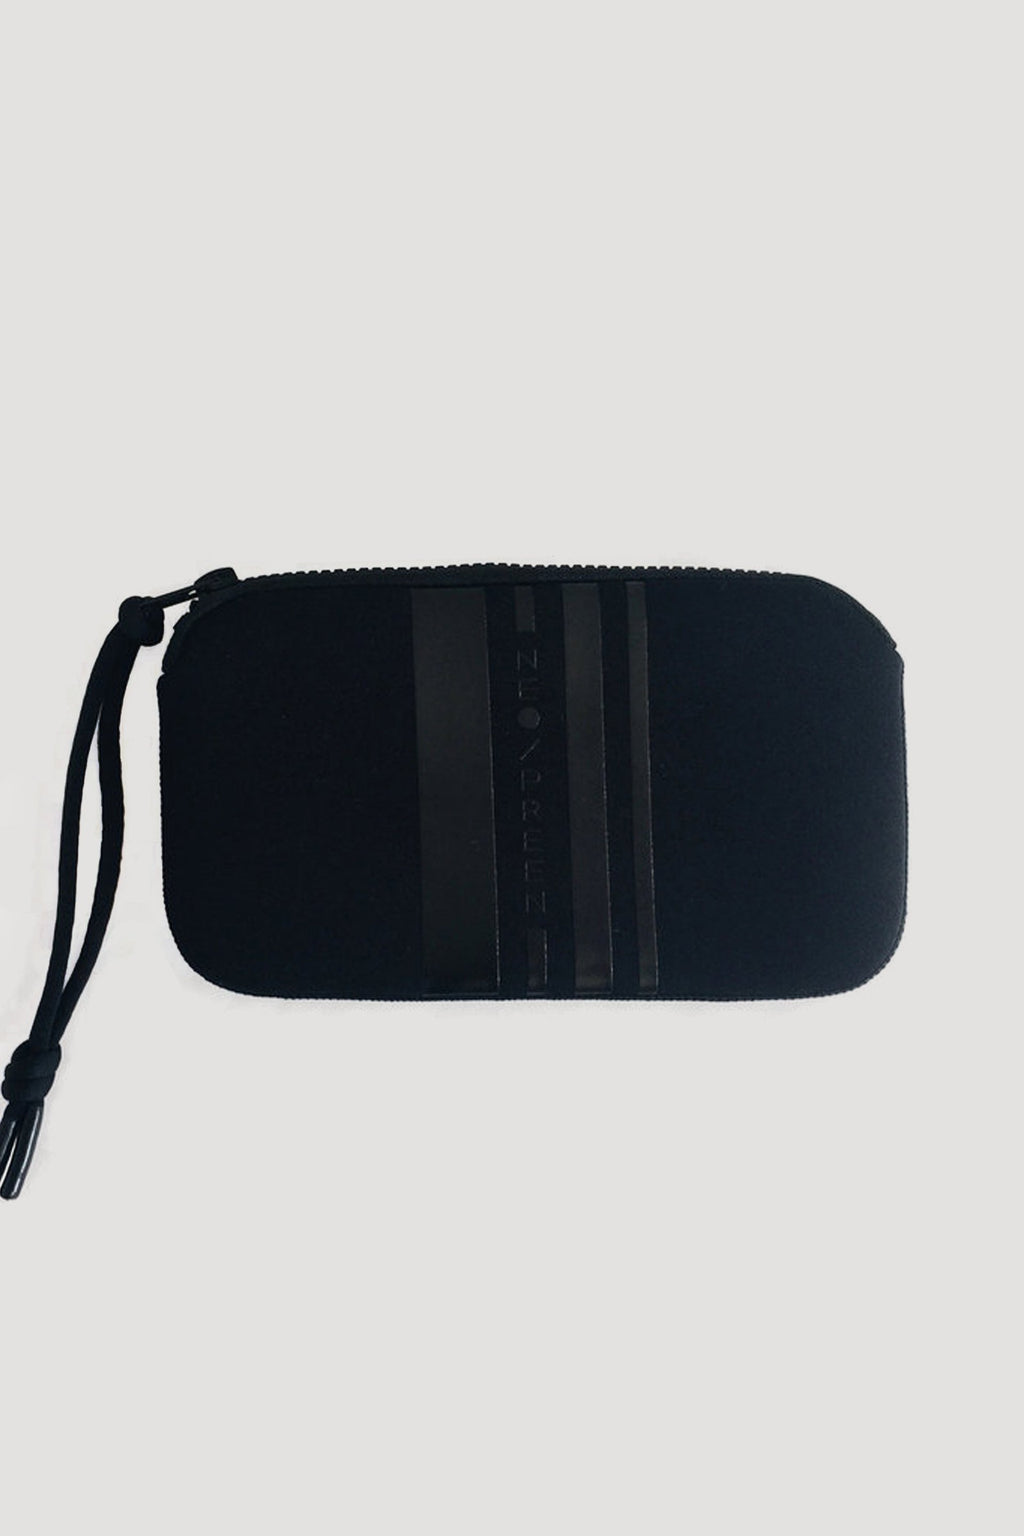 NEO/PREEN Mini Clutch - Midnight from Active Truth USA